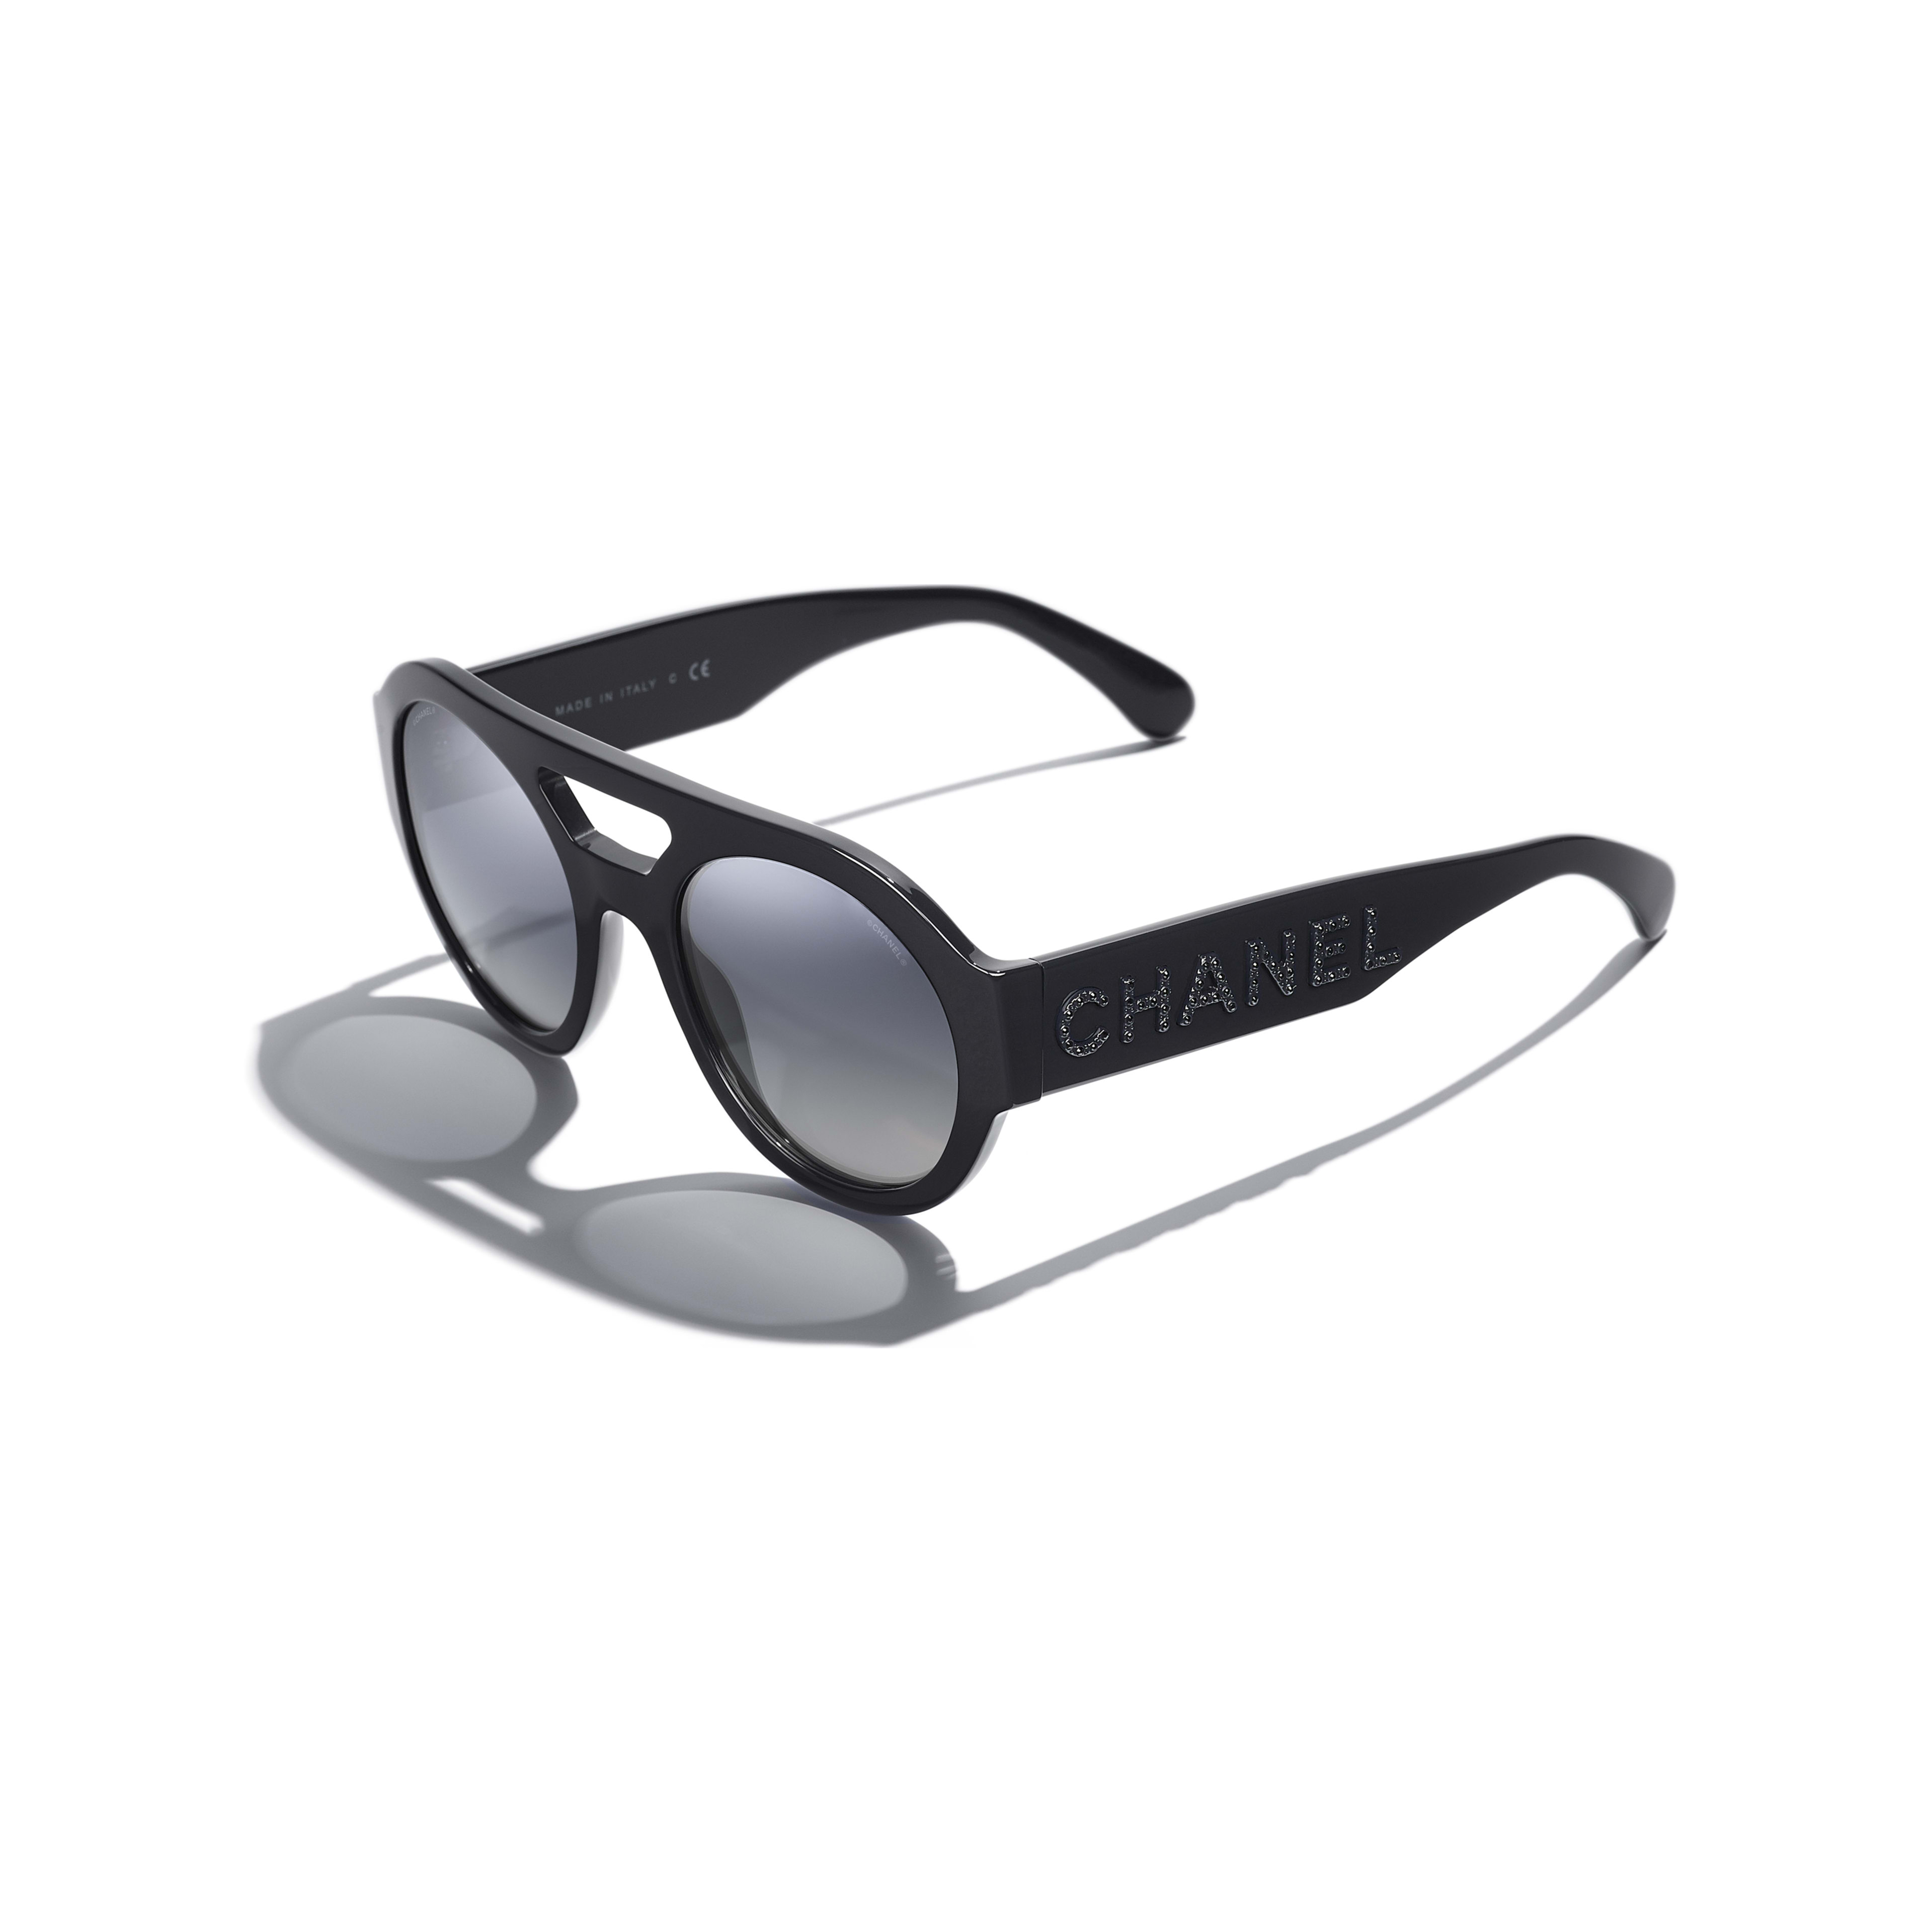 Round Sunglasses - Dark Blue - Acetate & Strass - Extra view - see full sized version